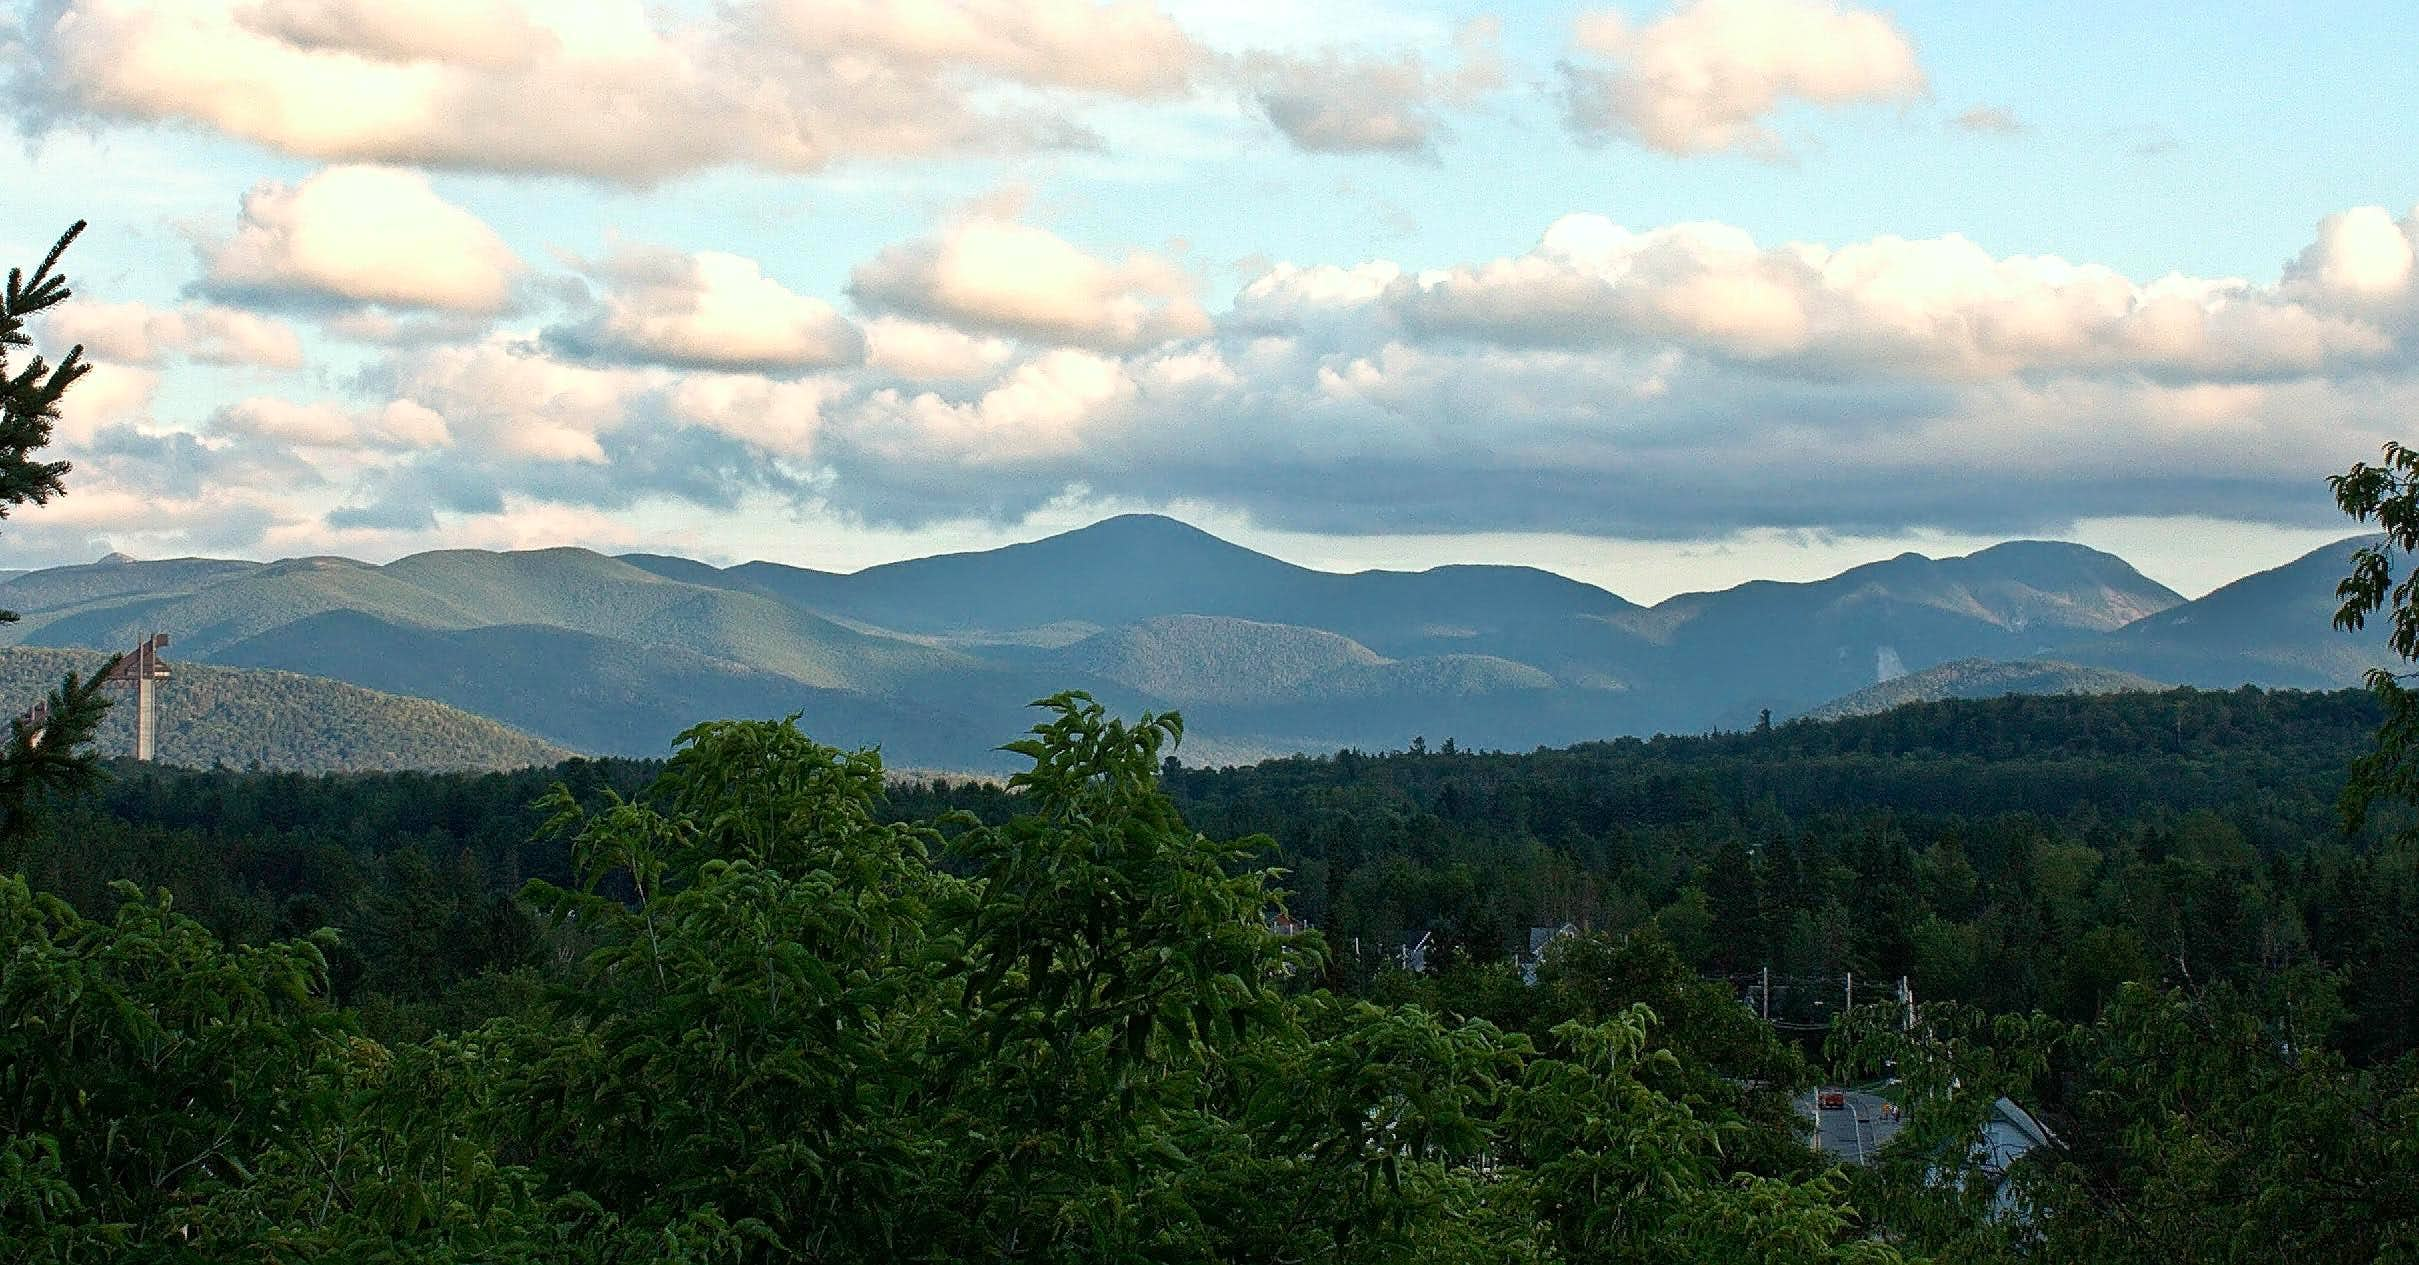 Lake Placid and High Peaks